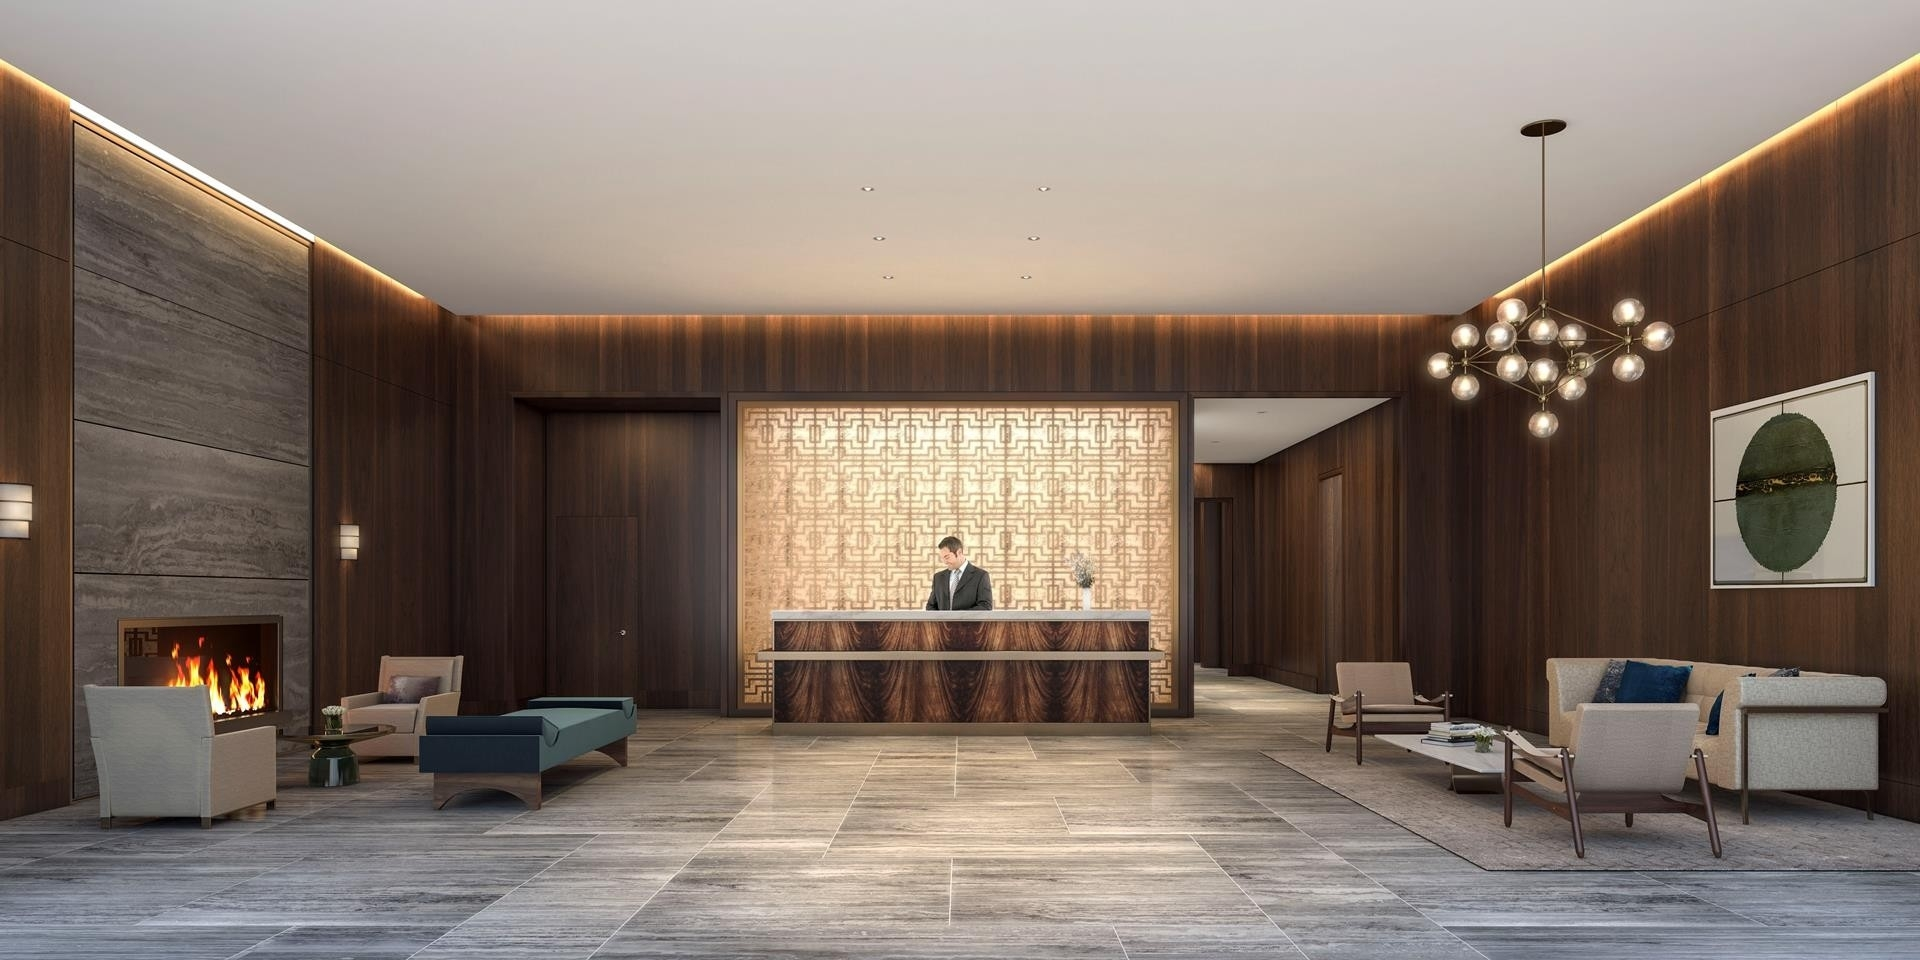 7. Condominiums for Sale at Gramercy Square, 215 East 19th St, 17A Gramercy Park, New York, NY 10003